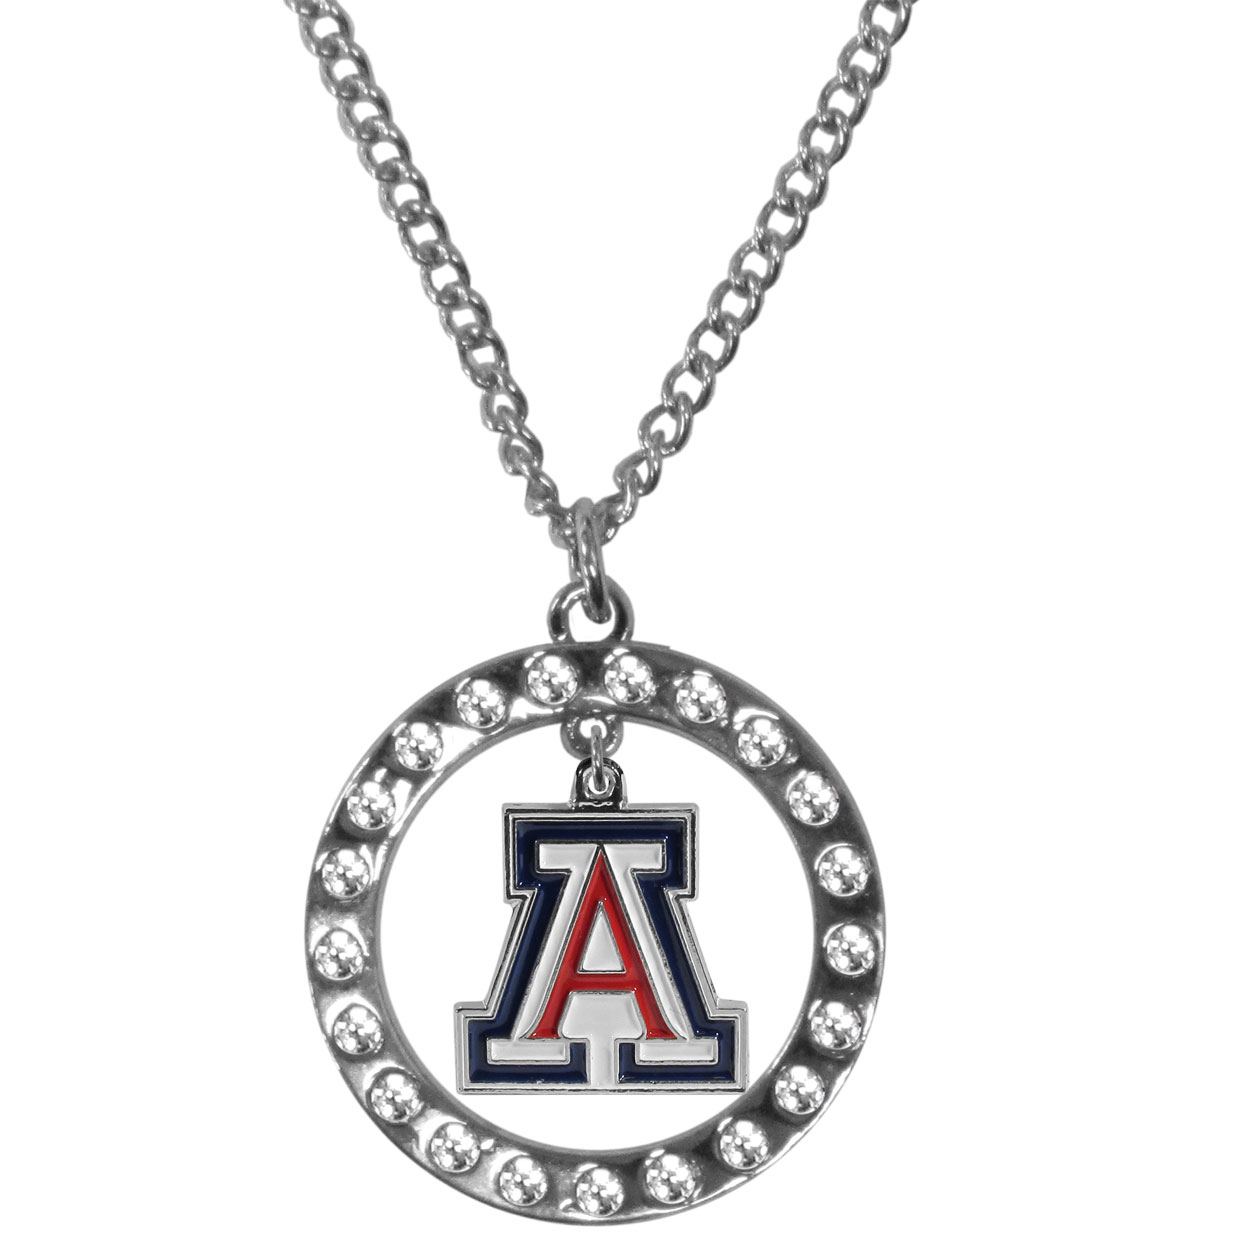 Arizona Wildcats Rhinestone Hoop Necklaces - Our Arizona Wildcats rhinestone hoop necklace comes on an 18 inch chain and features a hoop covered in rhinestones with a high polish chrome finish and a cast and enameled team charm dangling in the center.